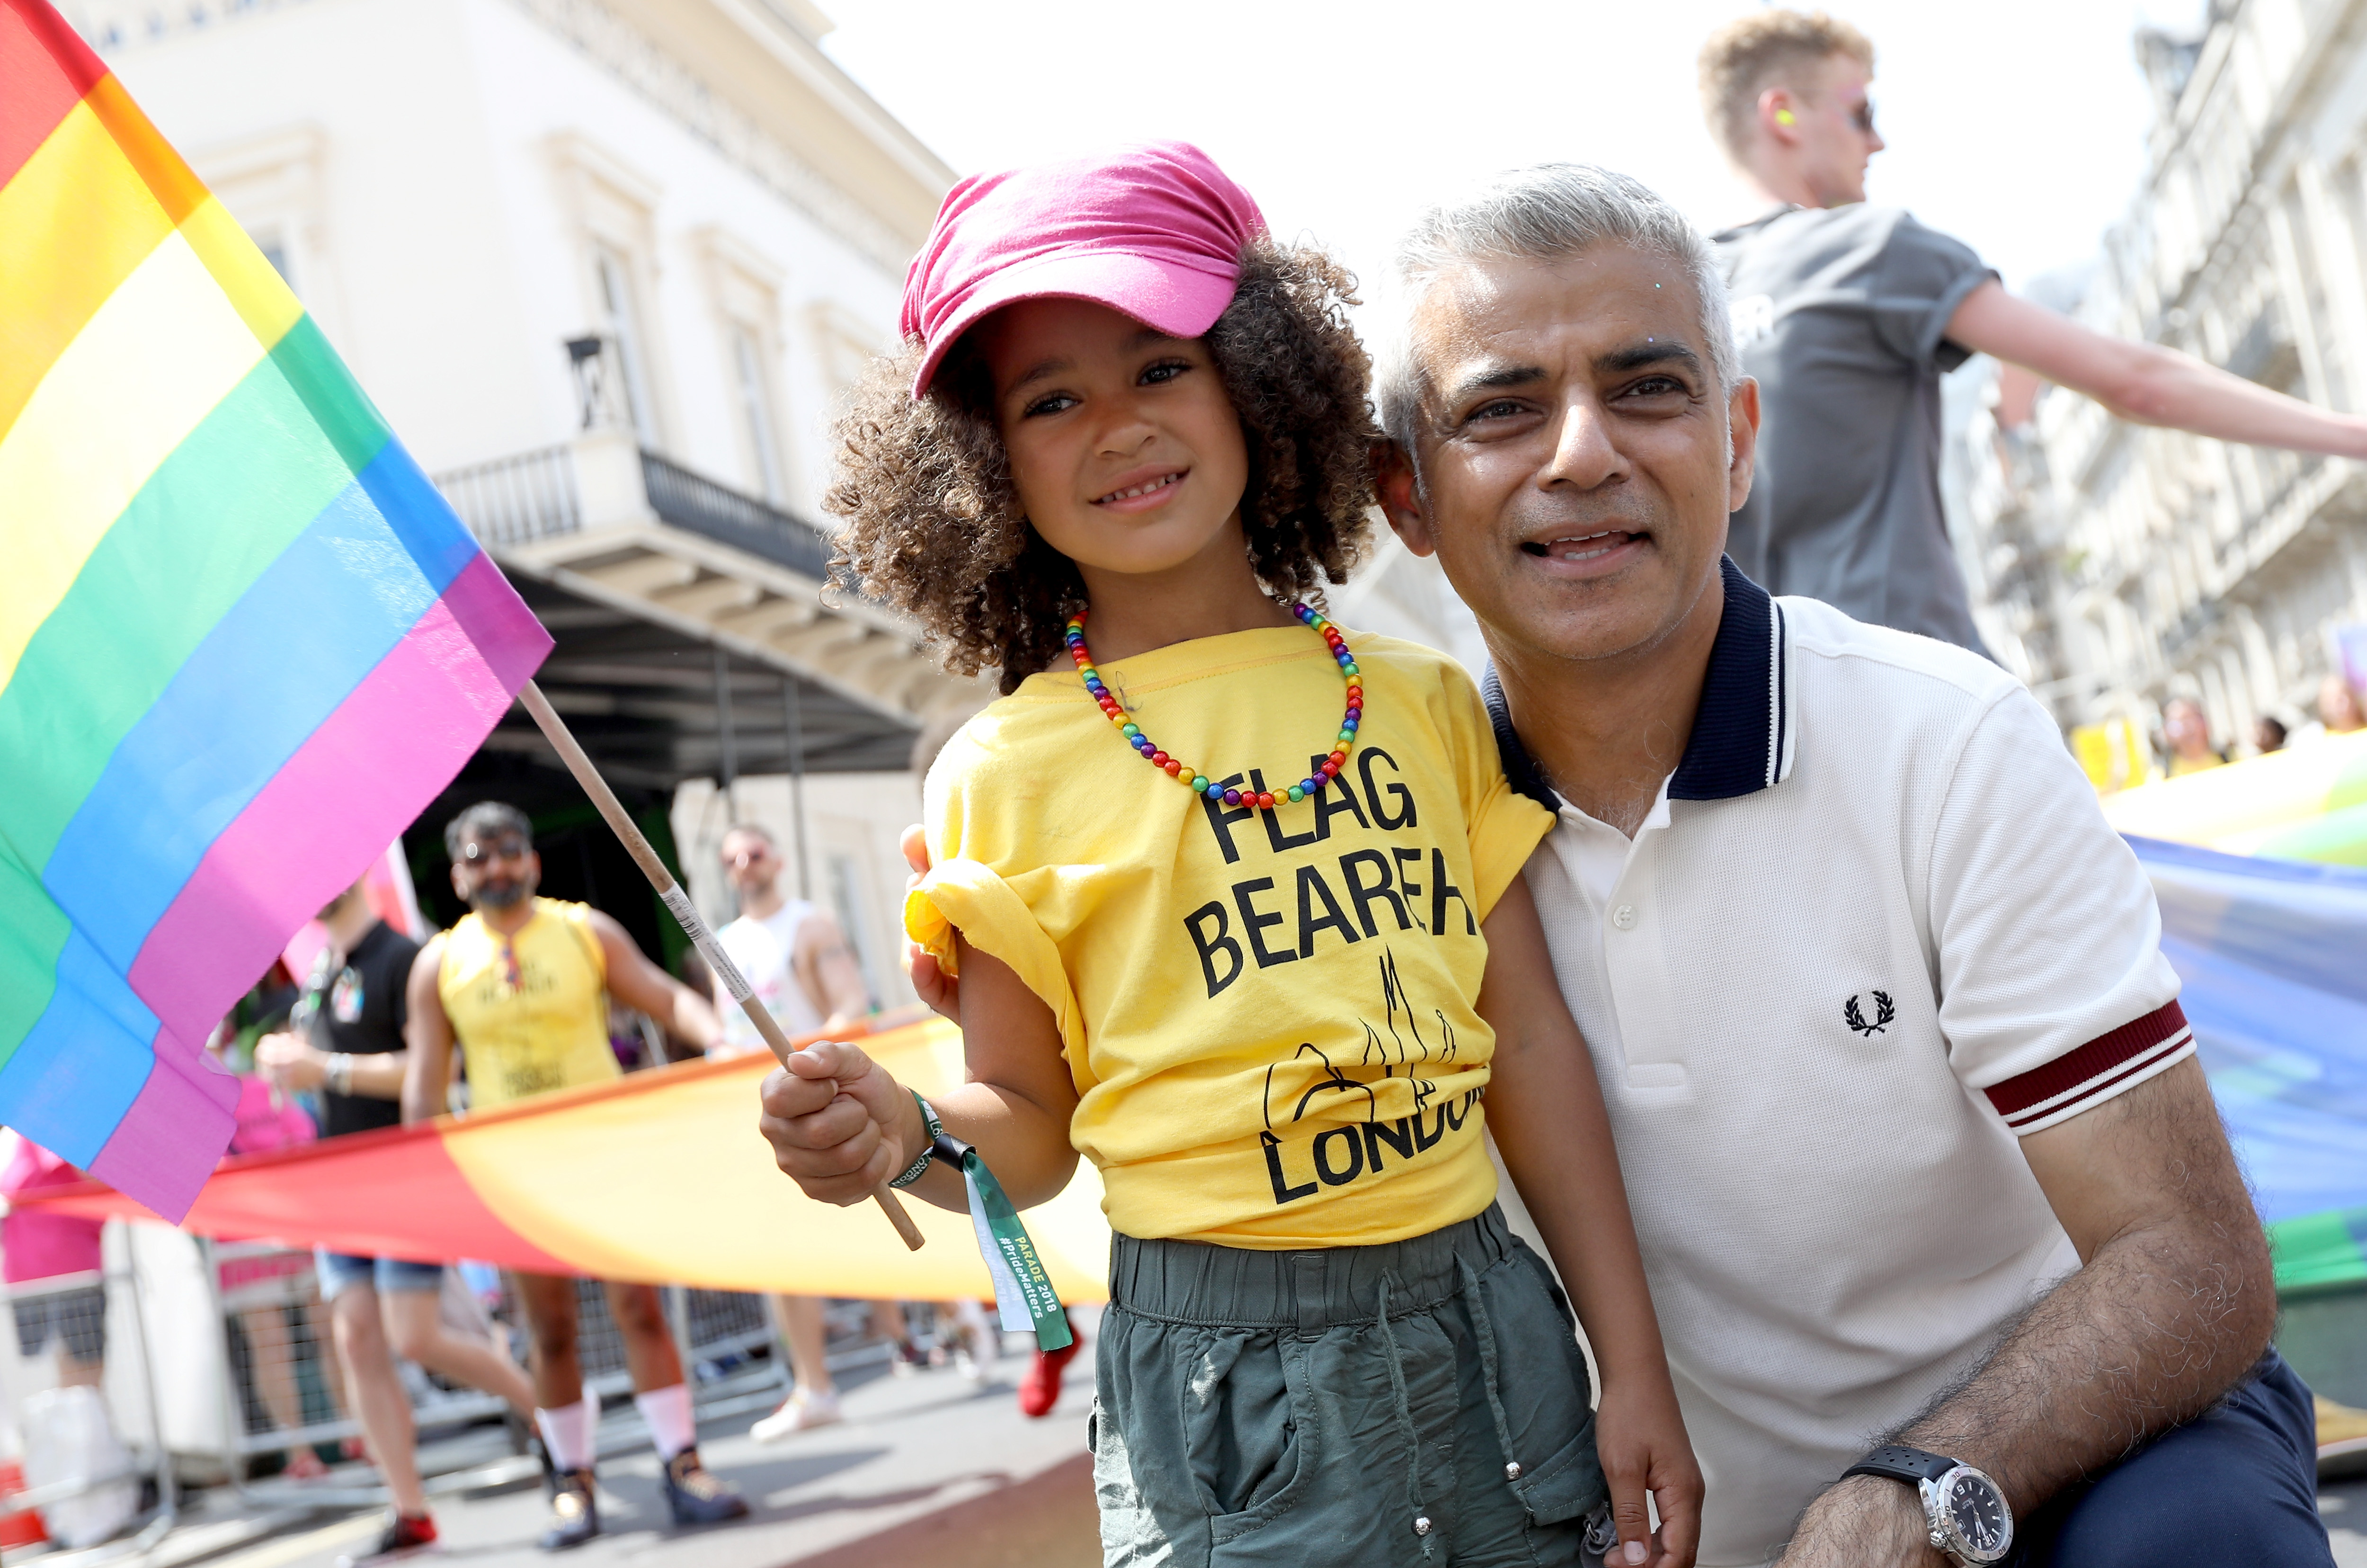 Mayor of London Sadiq Khan with a young flag bearer during the Pride In London parade on July 7, 2018 in London, England.